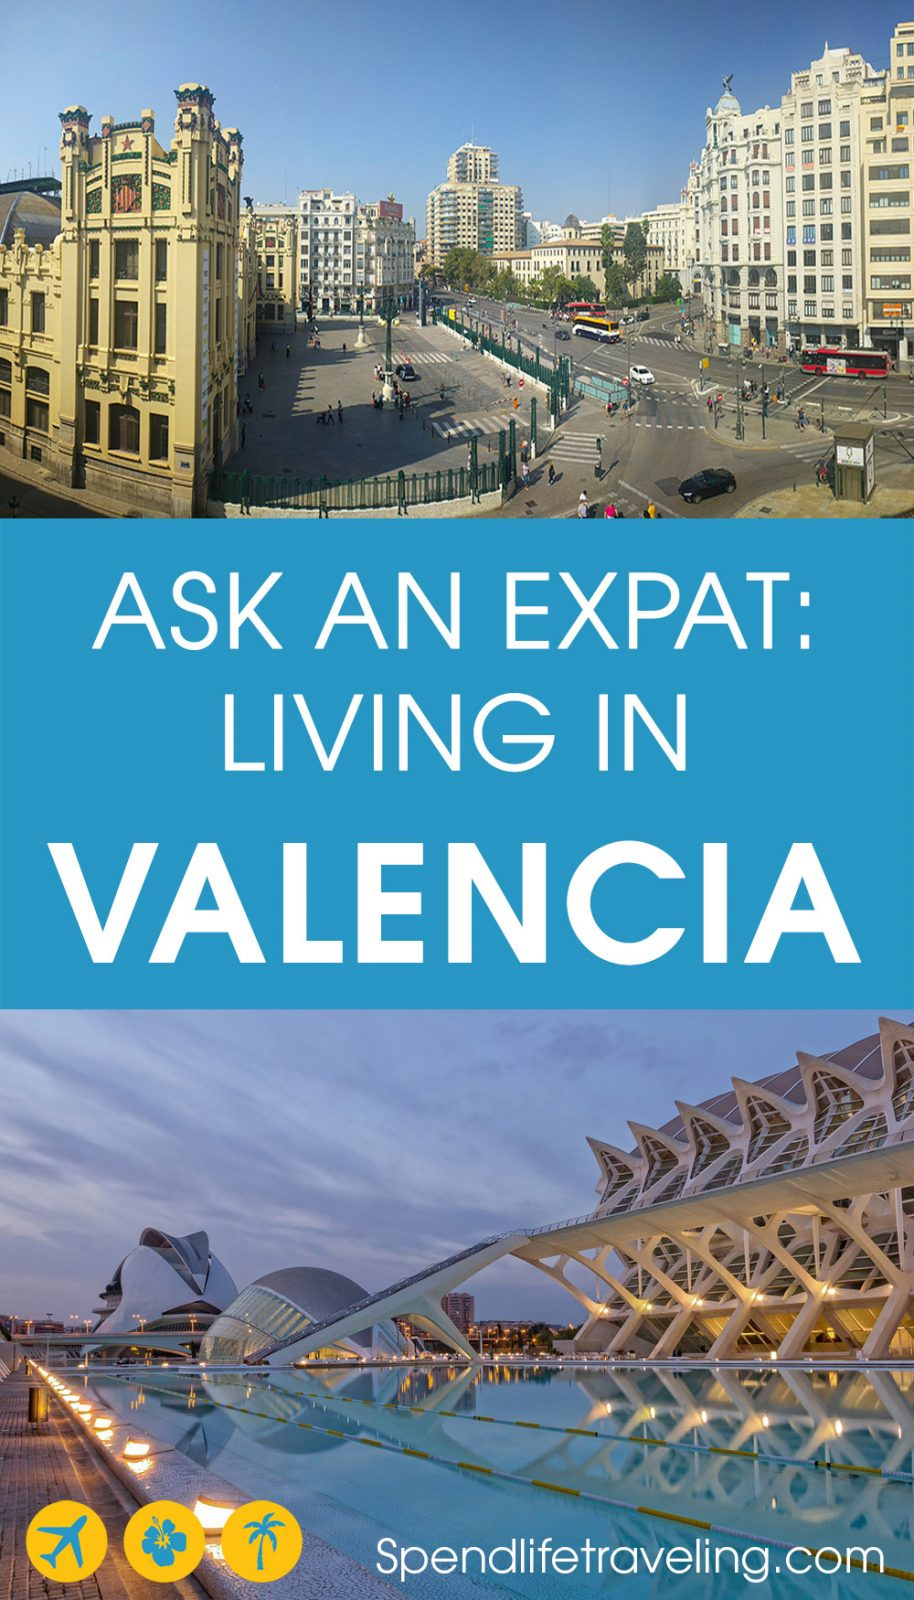 What is it like to move to Valencia, Spain? Interview with an expat in Valencia about moving to and living in this Mediterranean city. #Valencia #expat #expatlife #movetoSpain #liveinSpain